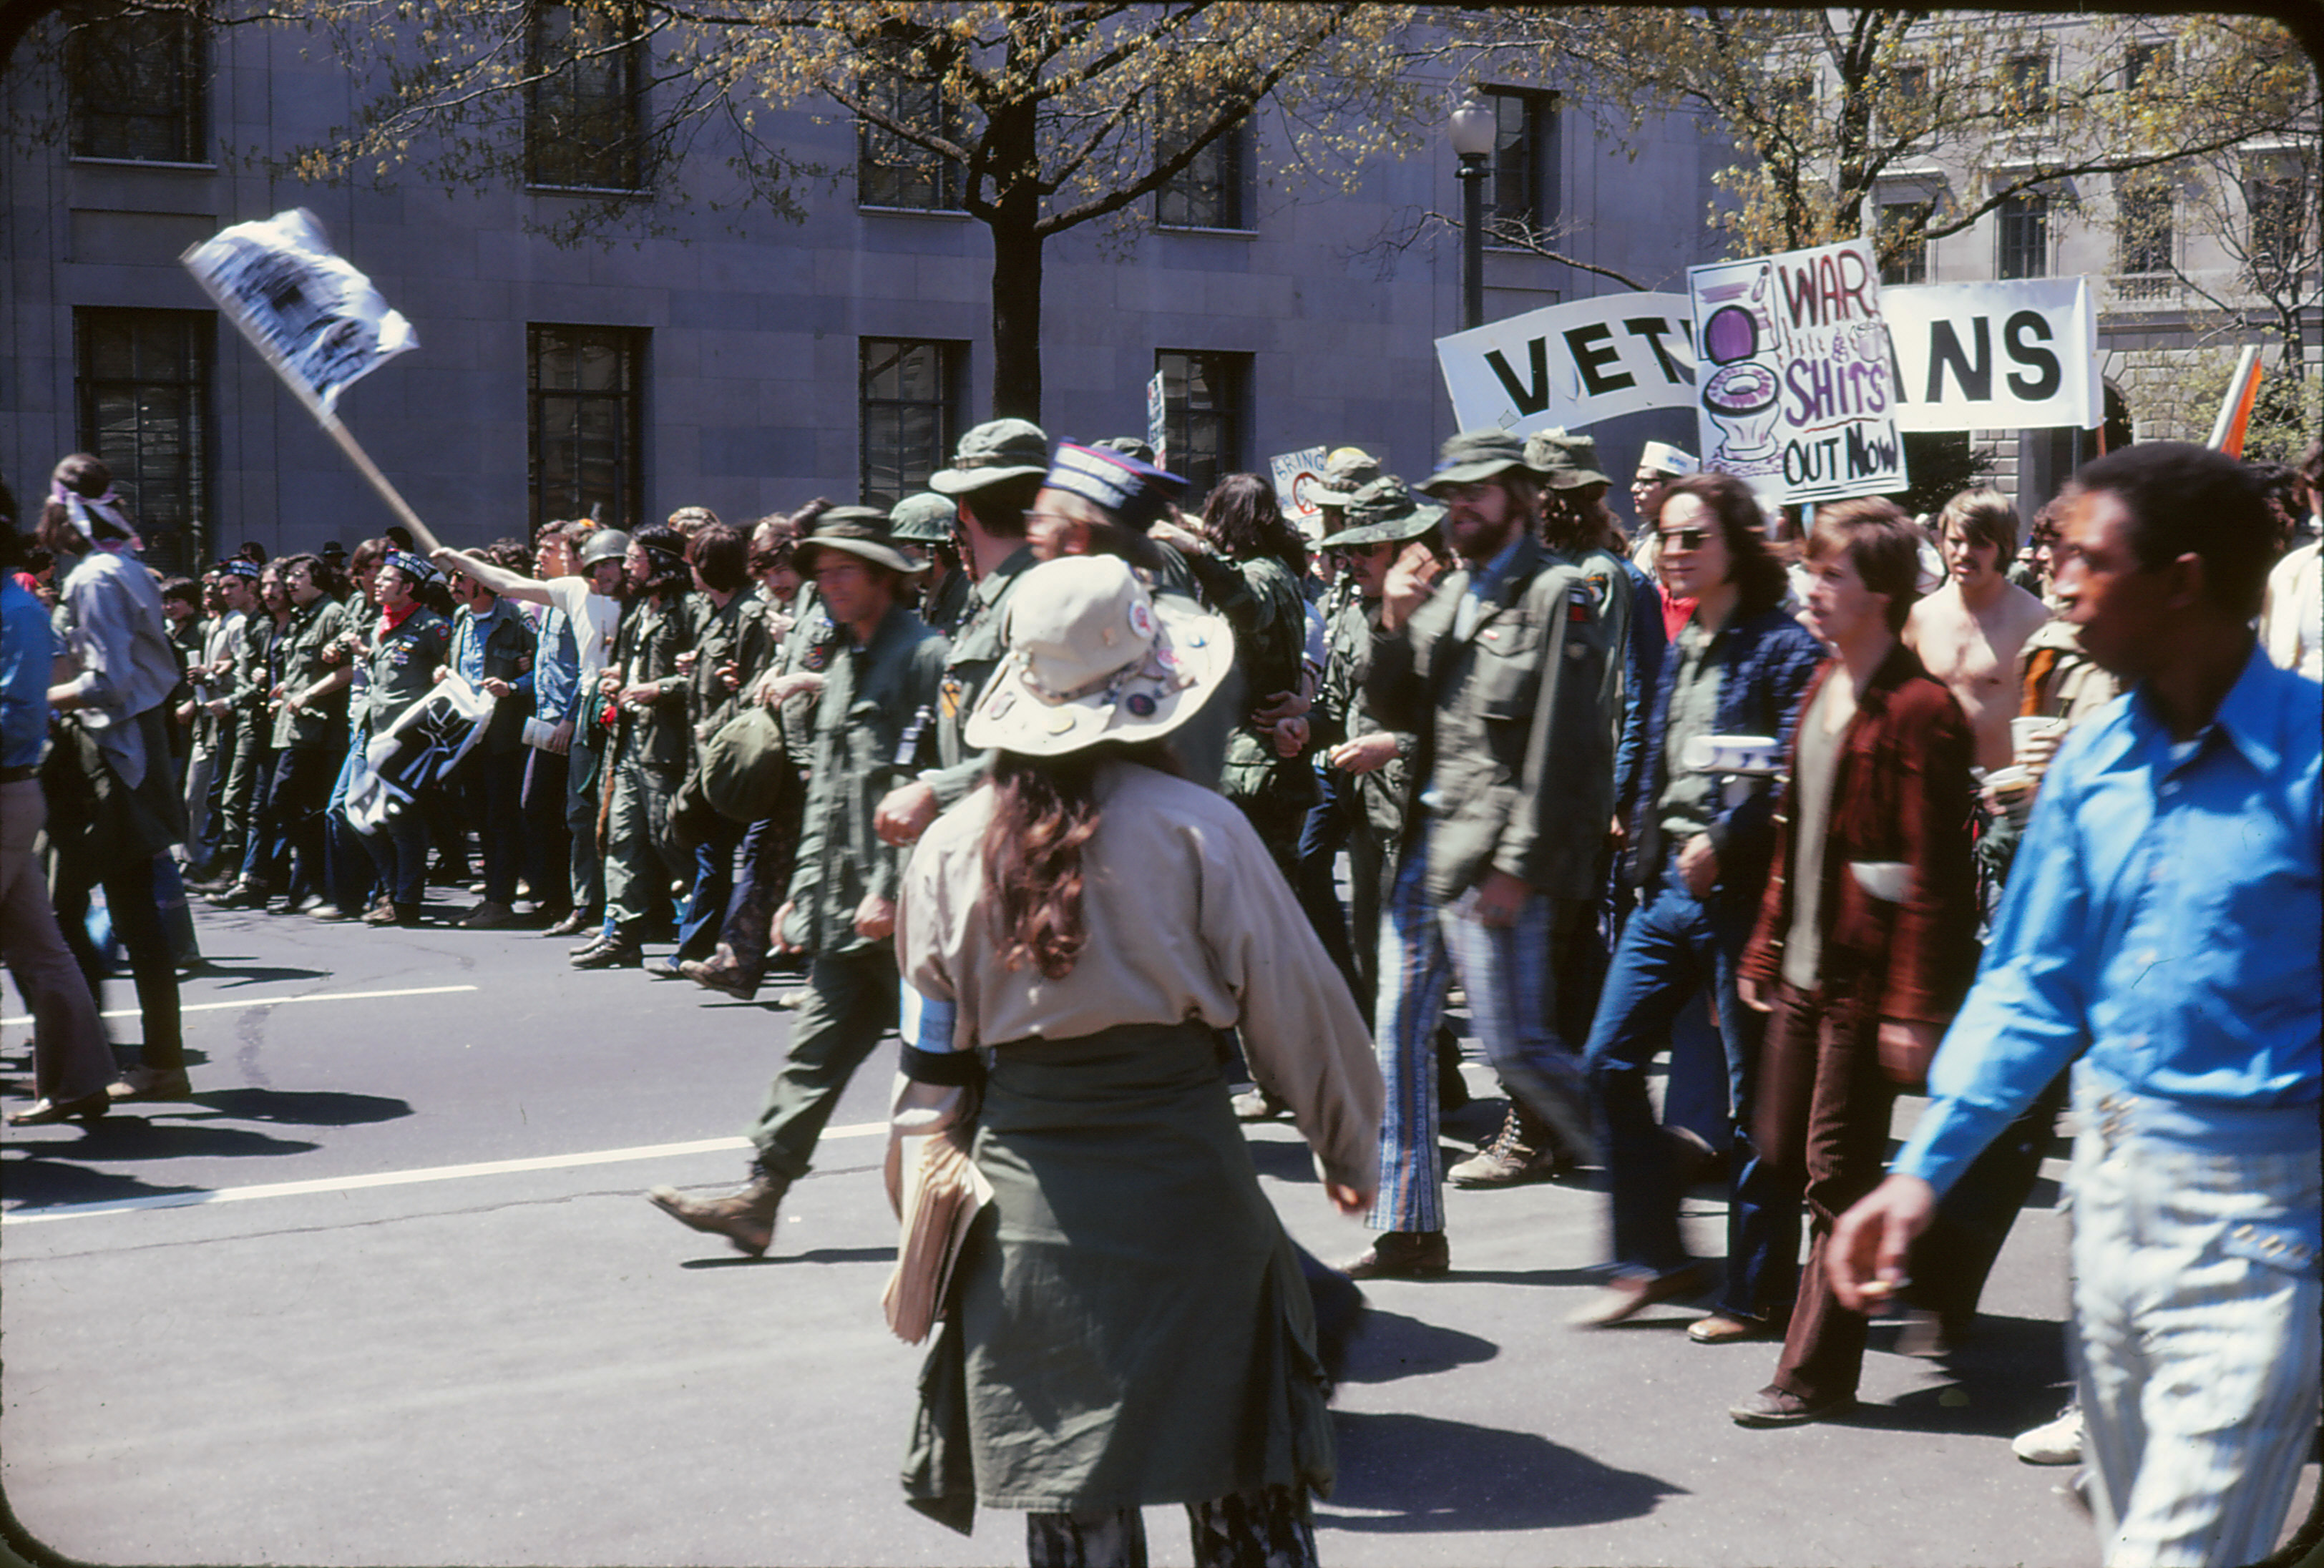 Anti-war protest against the Vietnam War in Washington, D.C. on April 24, 1971, at the corner of Pennsylvania Avenue and 10th Street NW. Photograph taken by Leena A. Krohn.